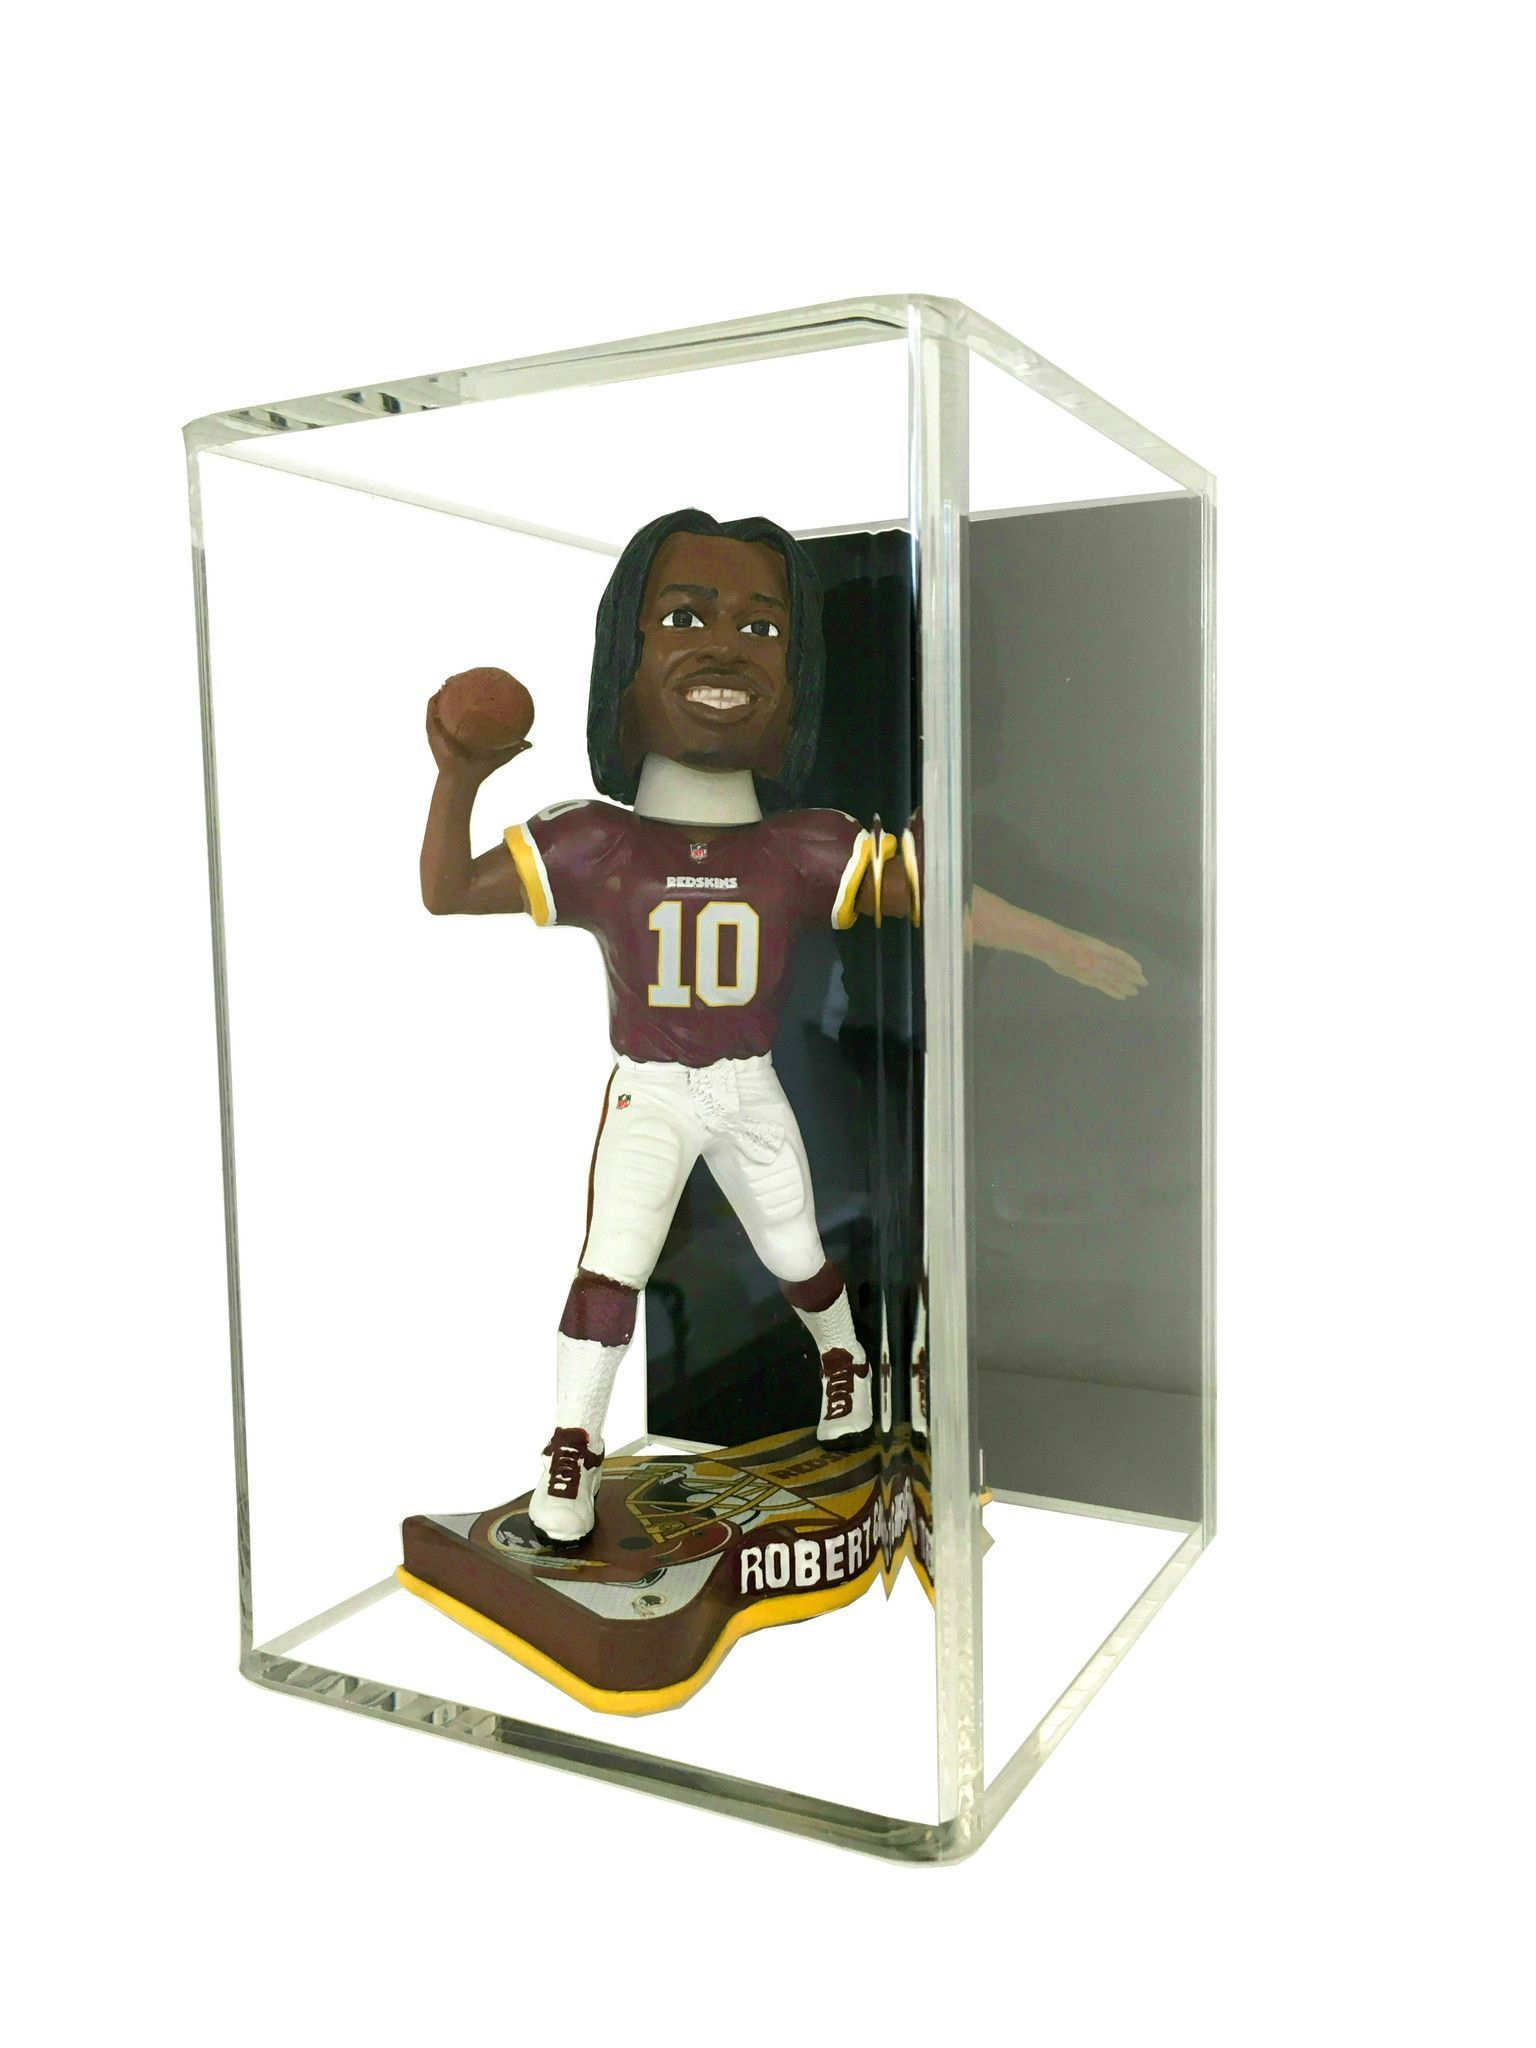 Bobblehead / Figurine Display Case (Wall Mount, Table or Shelf ...